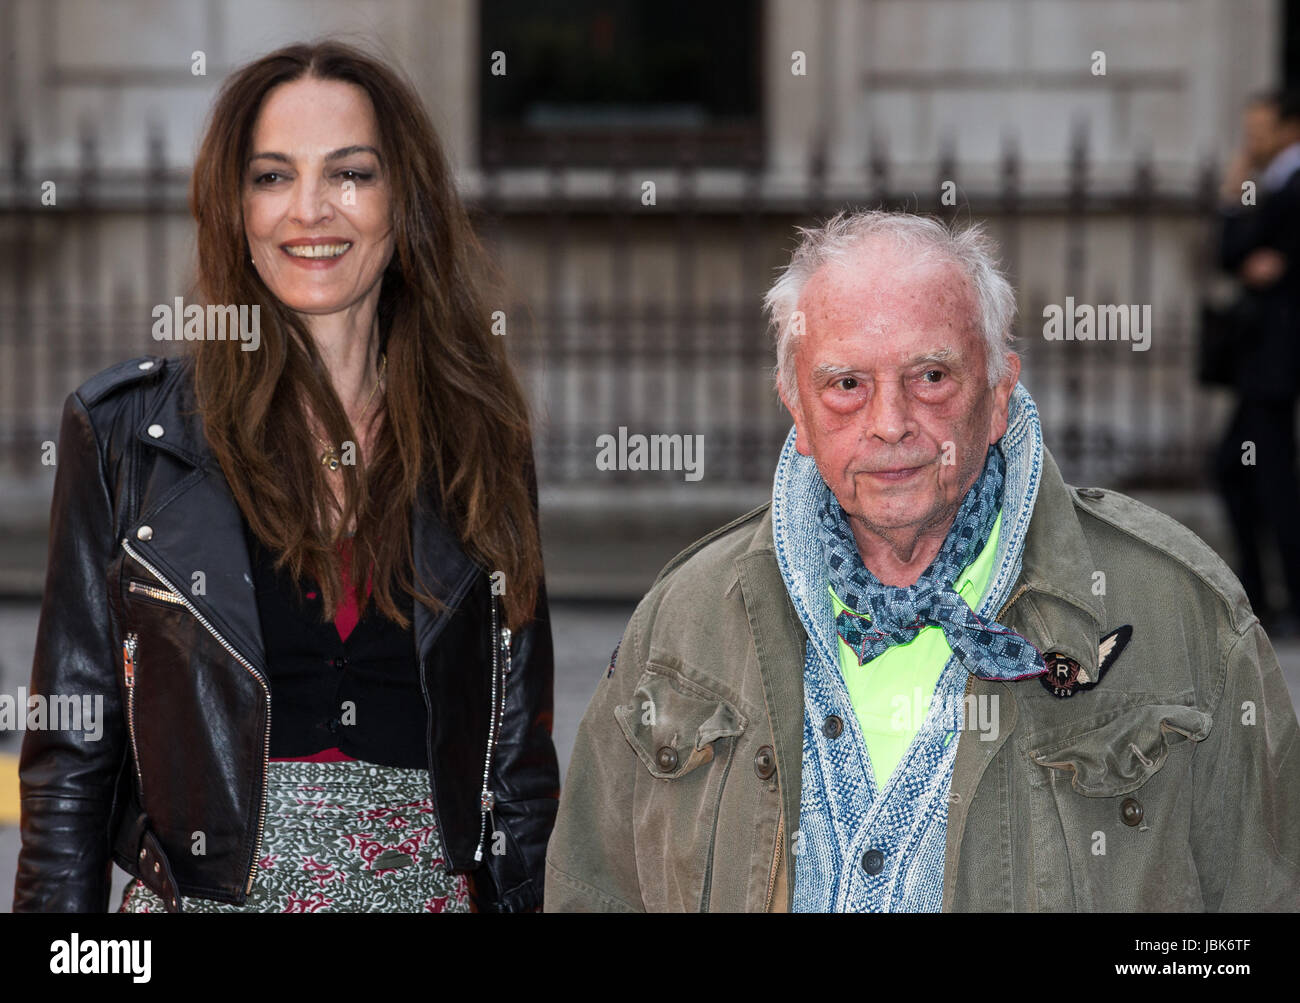 Photographer, David Bailey, and his wife Catherine Dyer at the VIP preview of the Royal Academy summer show 2017 - Stock Image